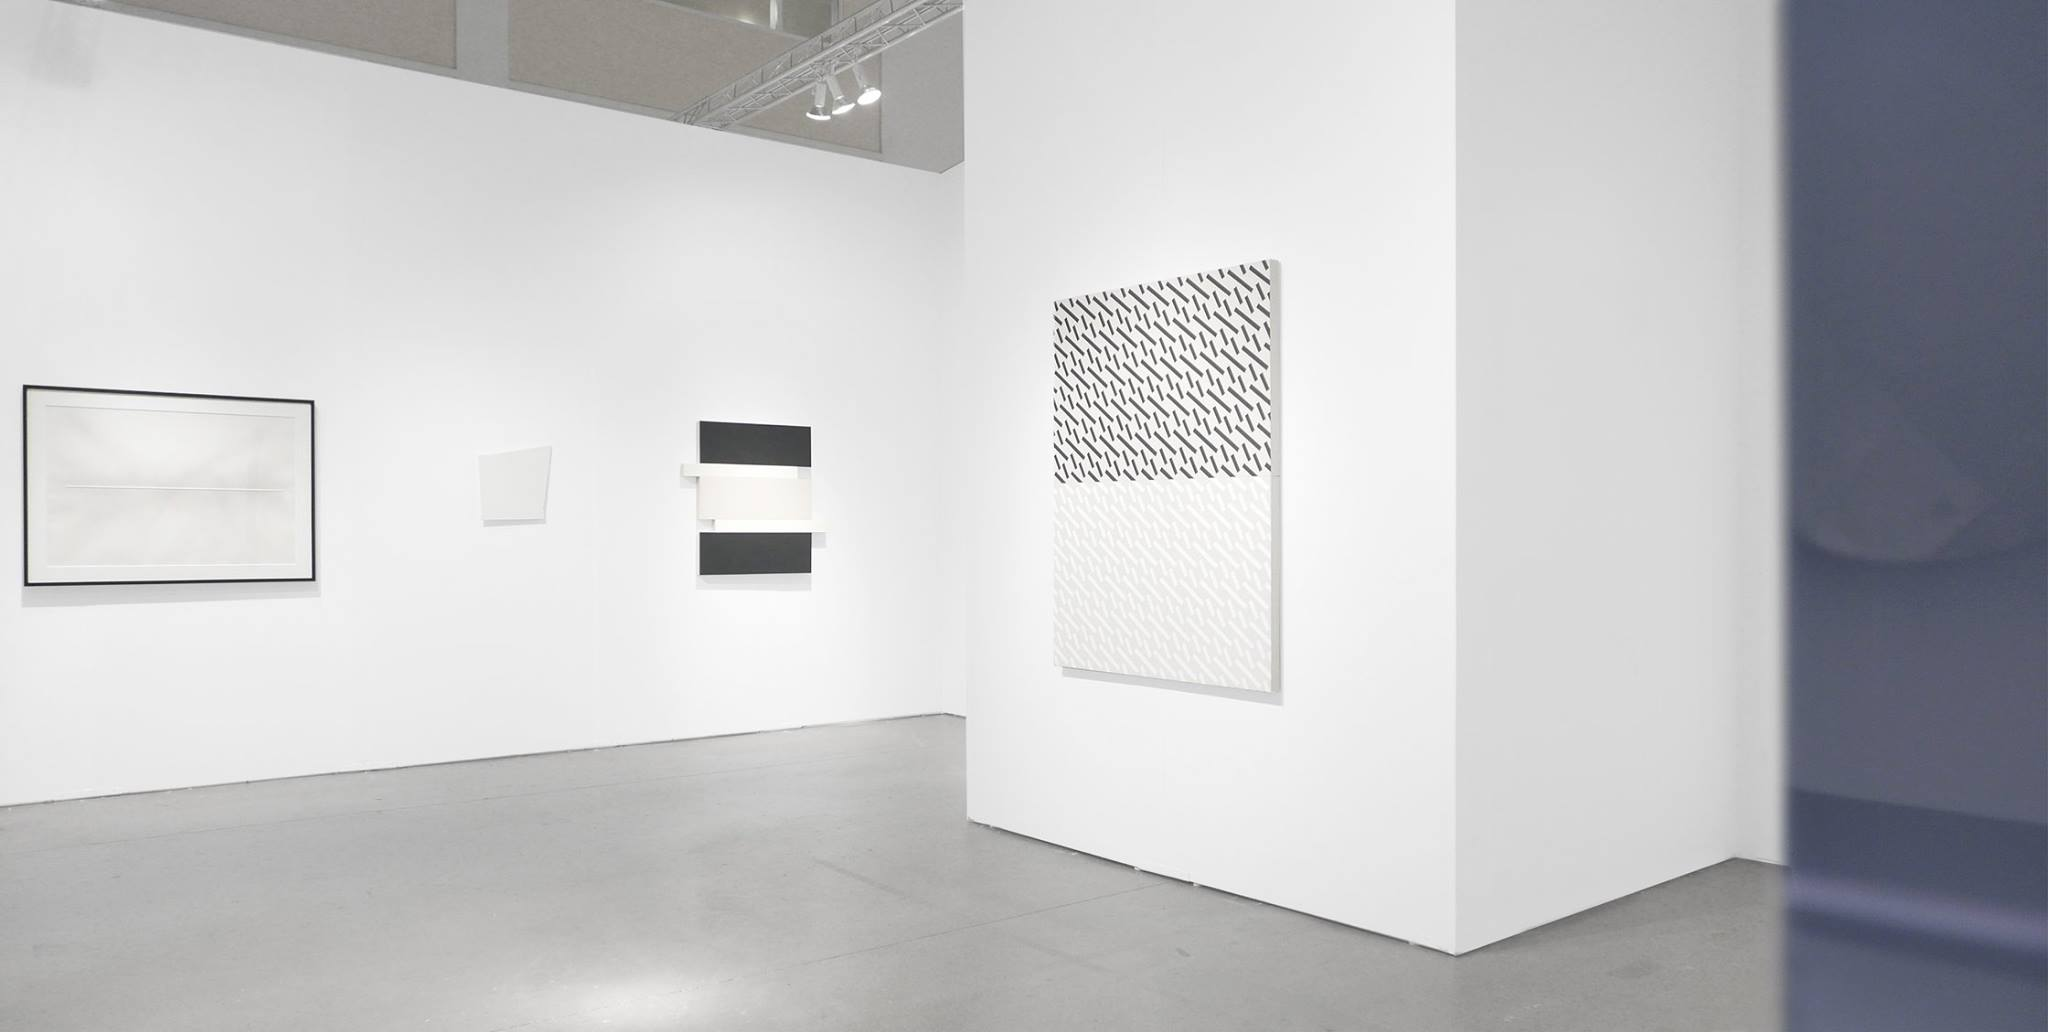 EXPO Chicago 2016, Peter Blake Gallery Booth 702, Installation View_4.jpg